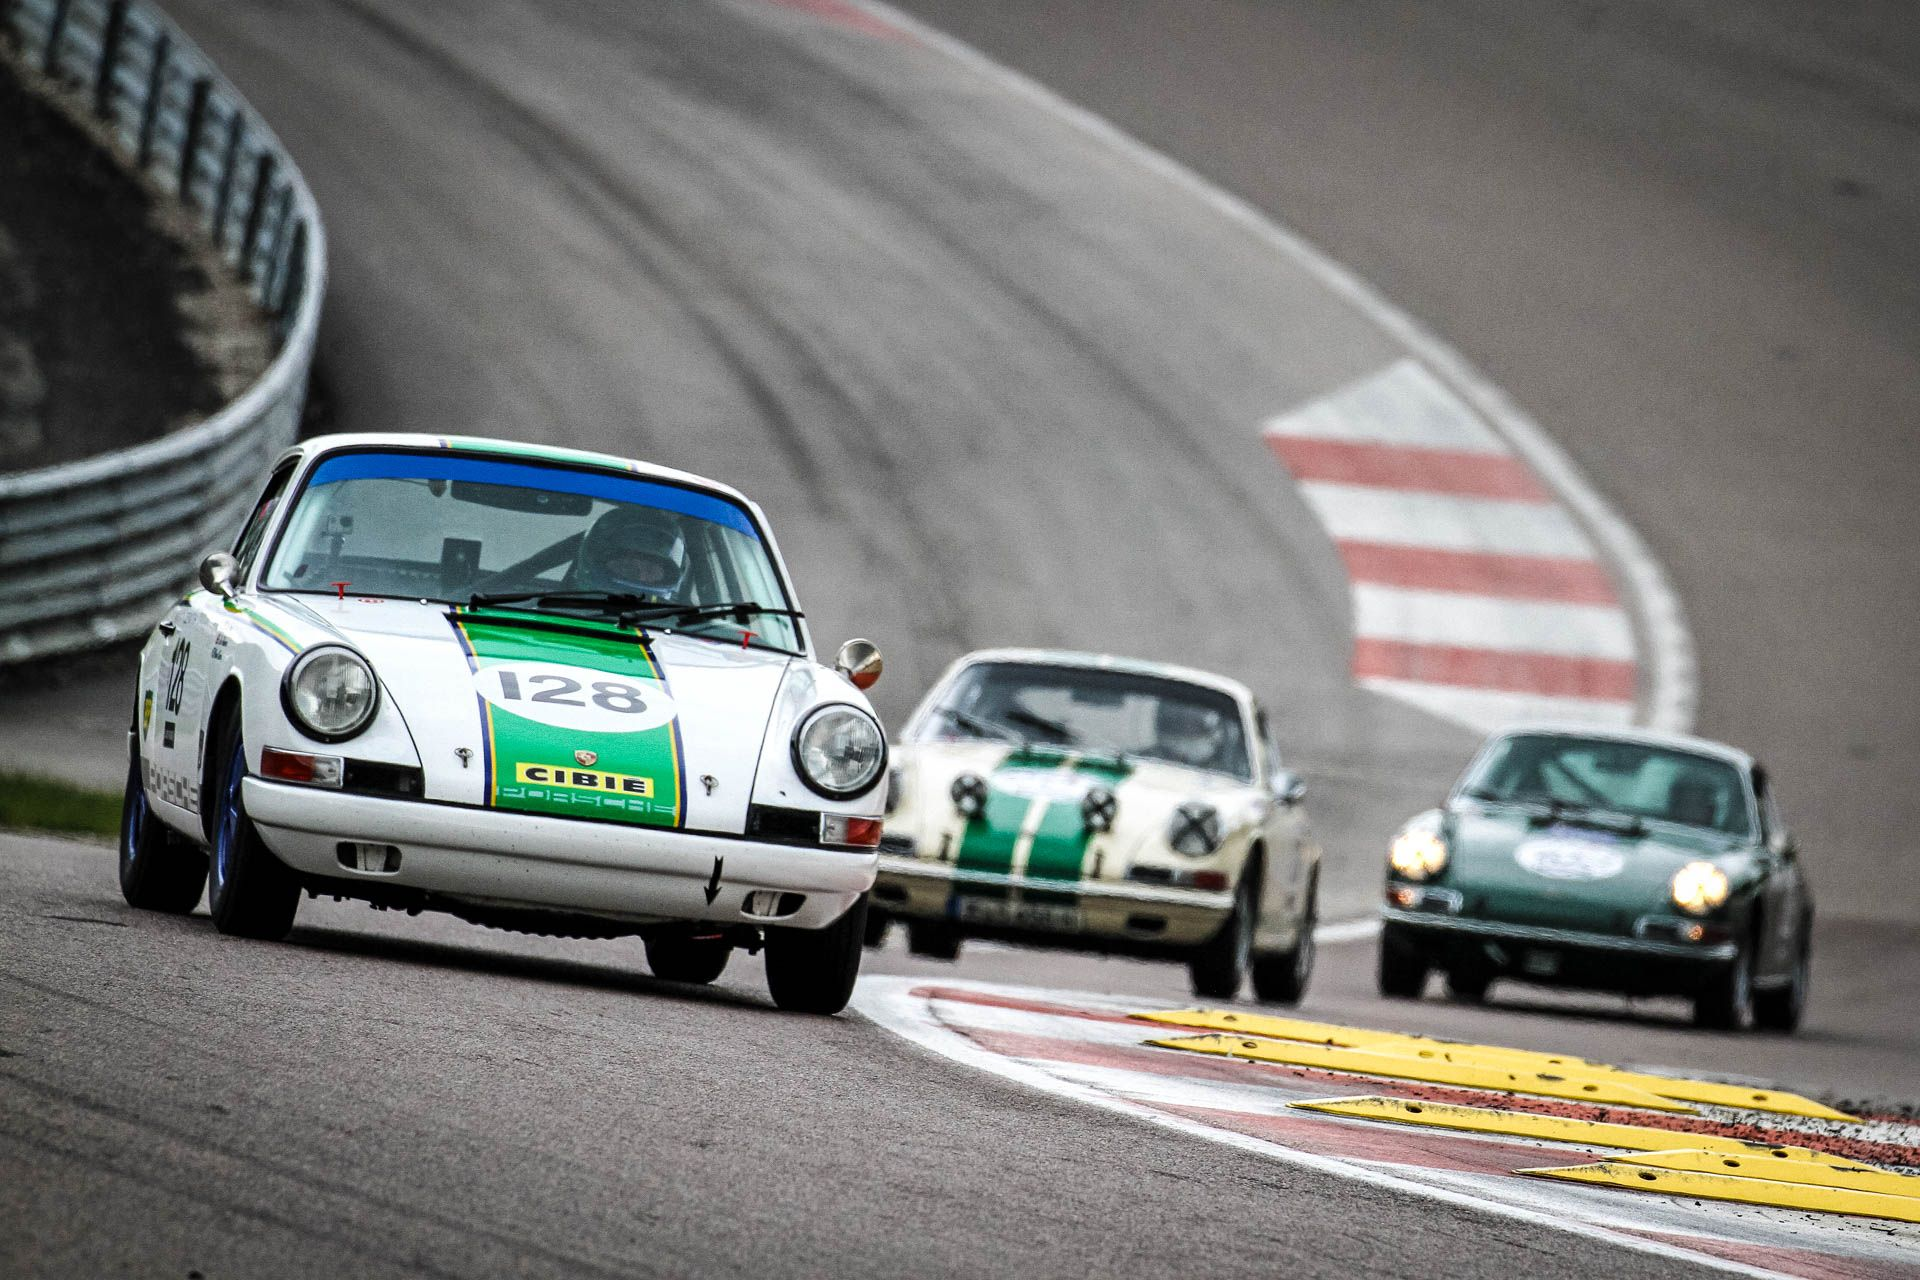 This Old Porsche 911 Race Car Will Gnaw Your Ears Off